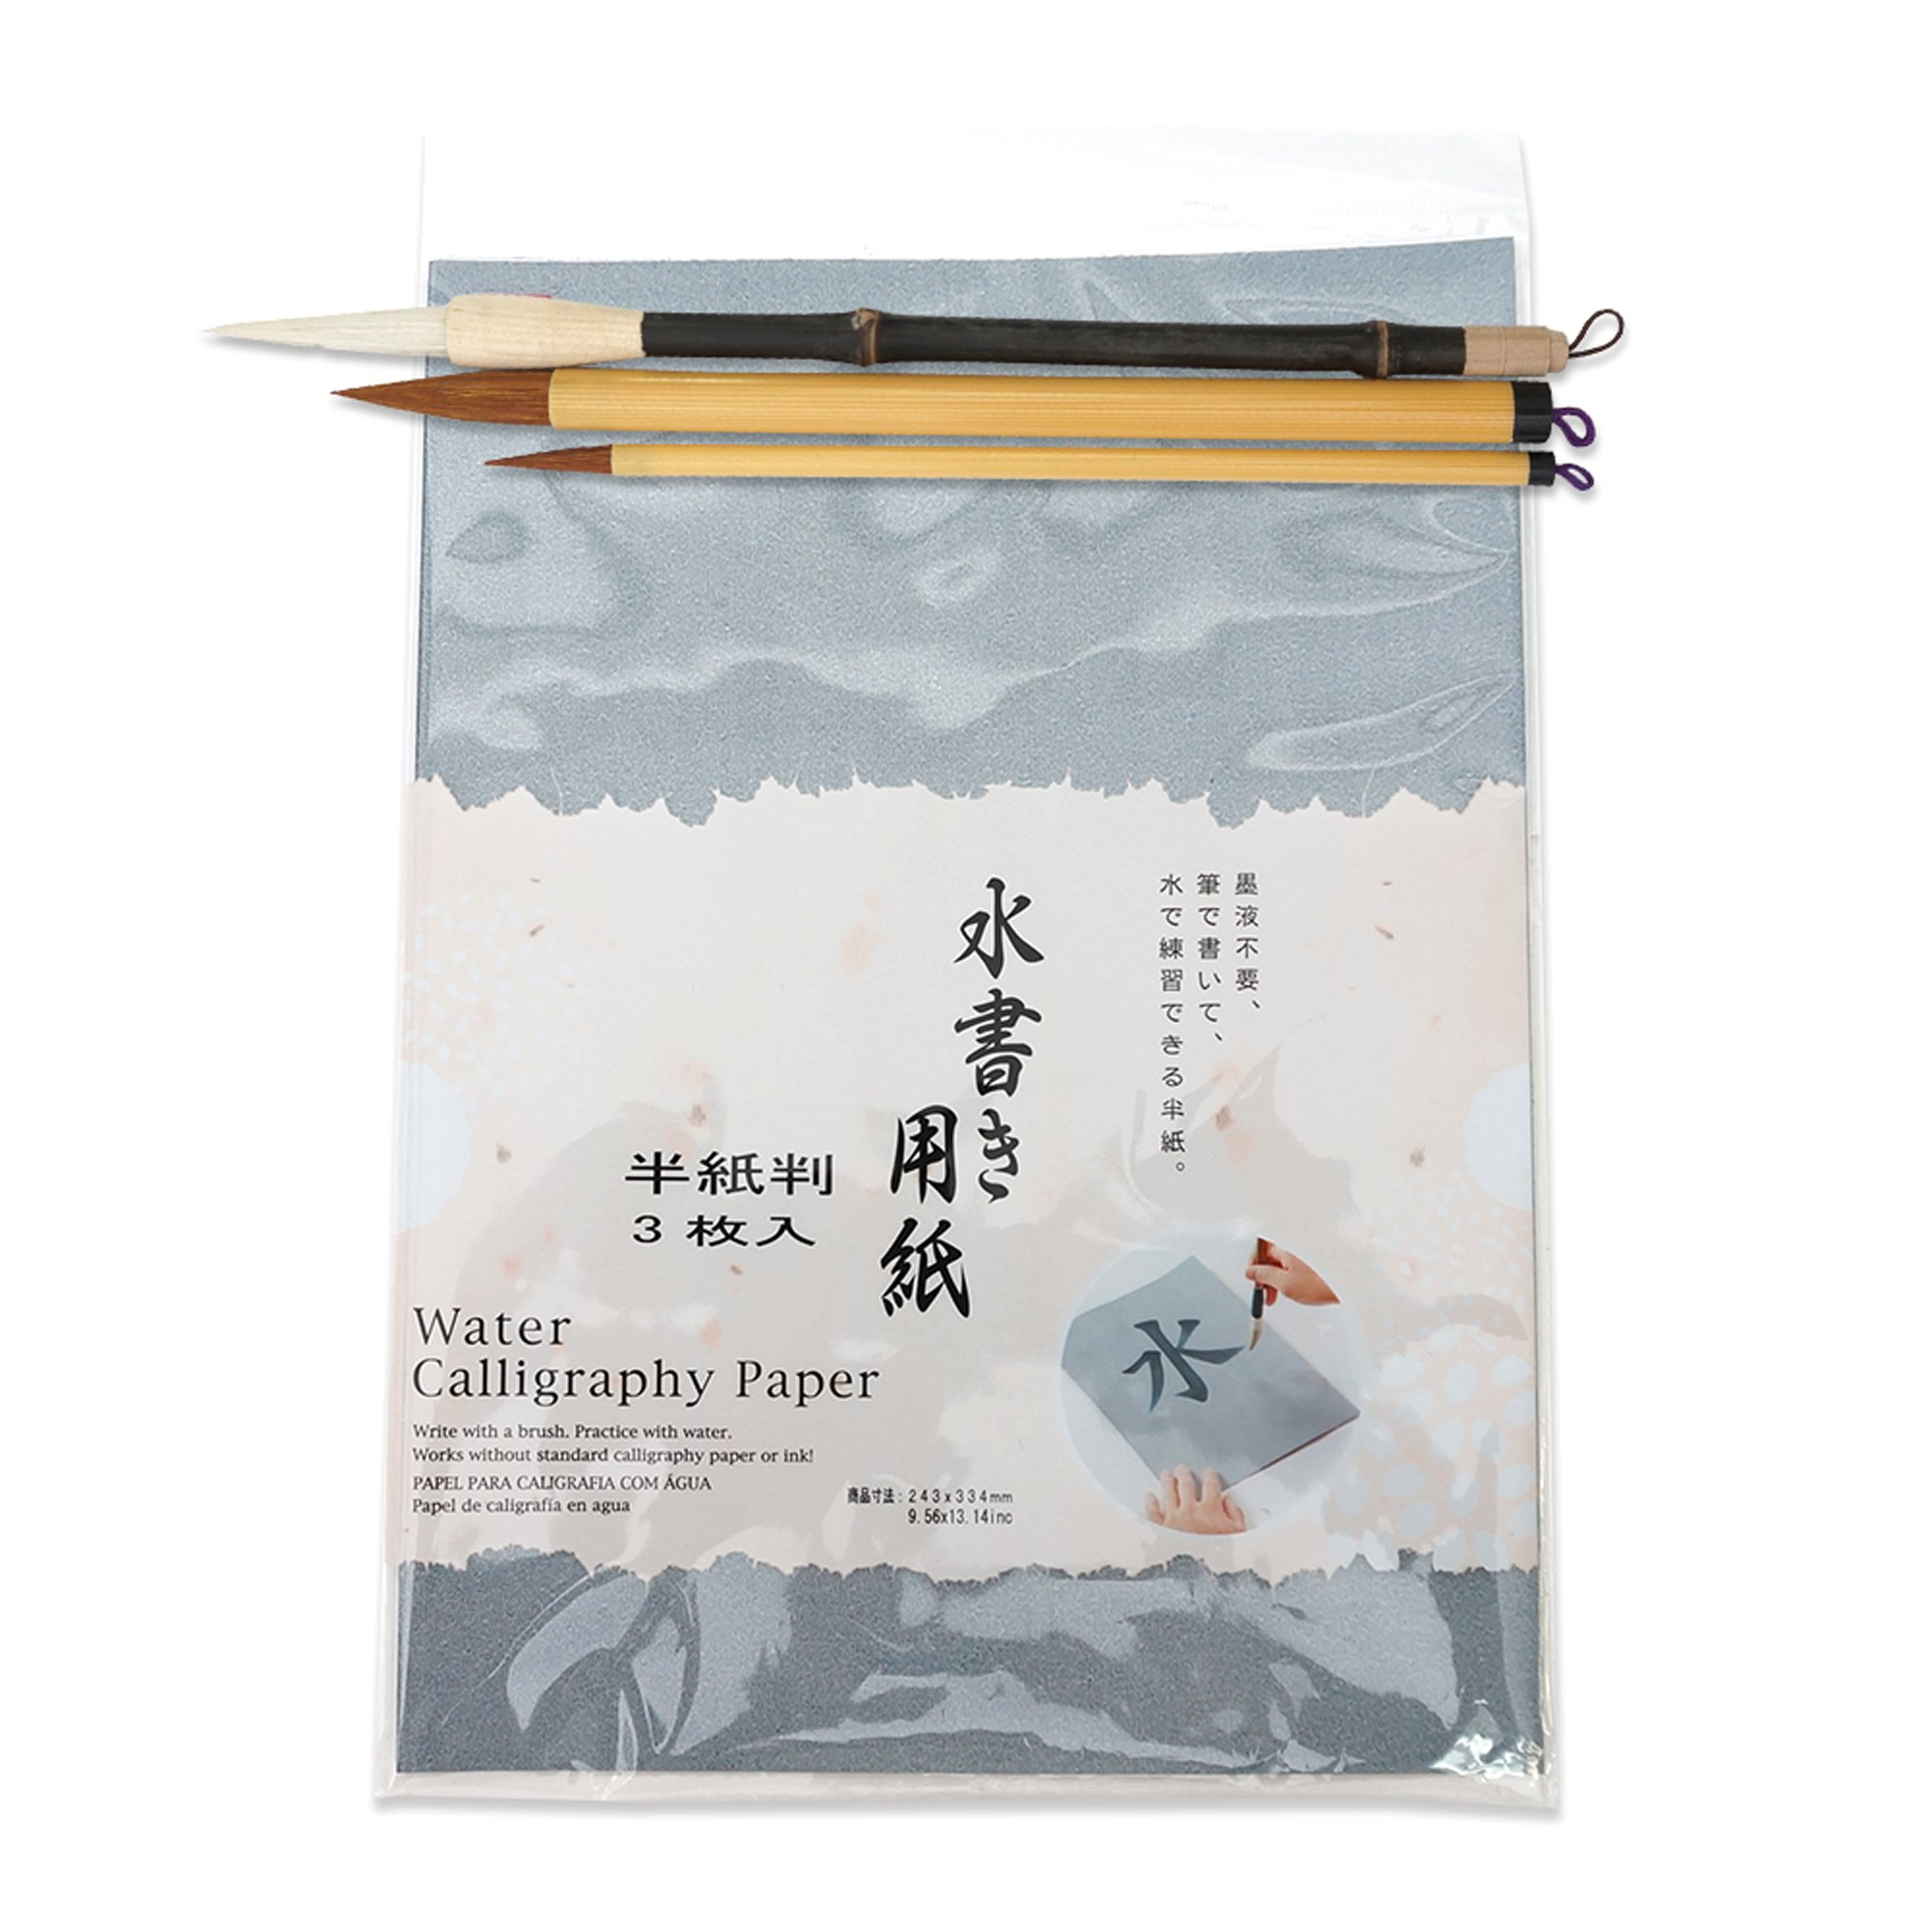 Sumi Calligraphy Water Calligraphy practice Paper, Drawing Brush×3 set import by JAPANESE cool items store